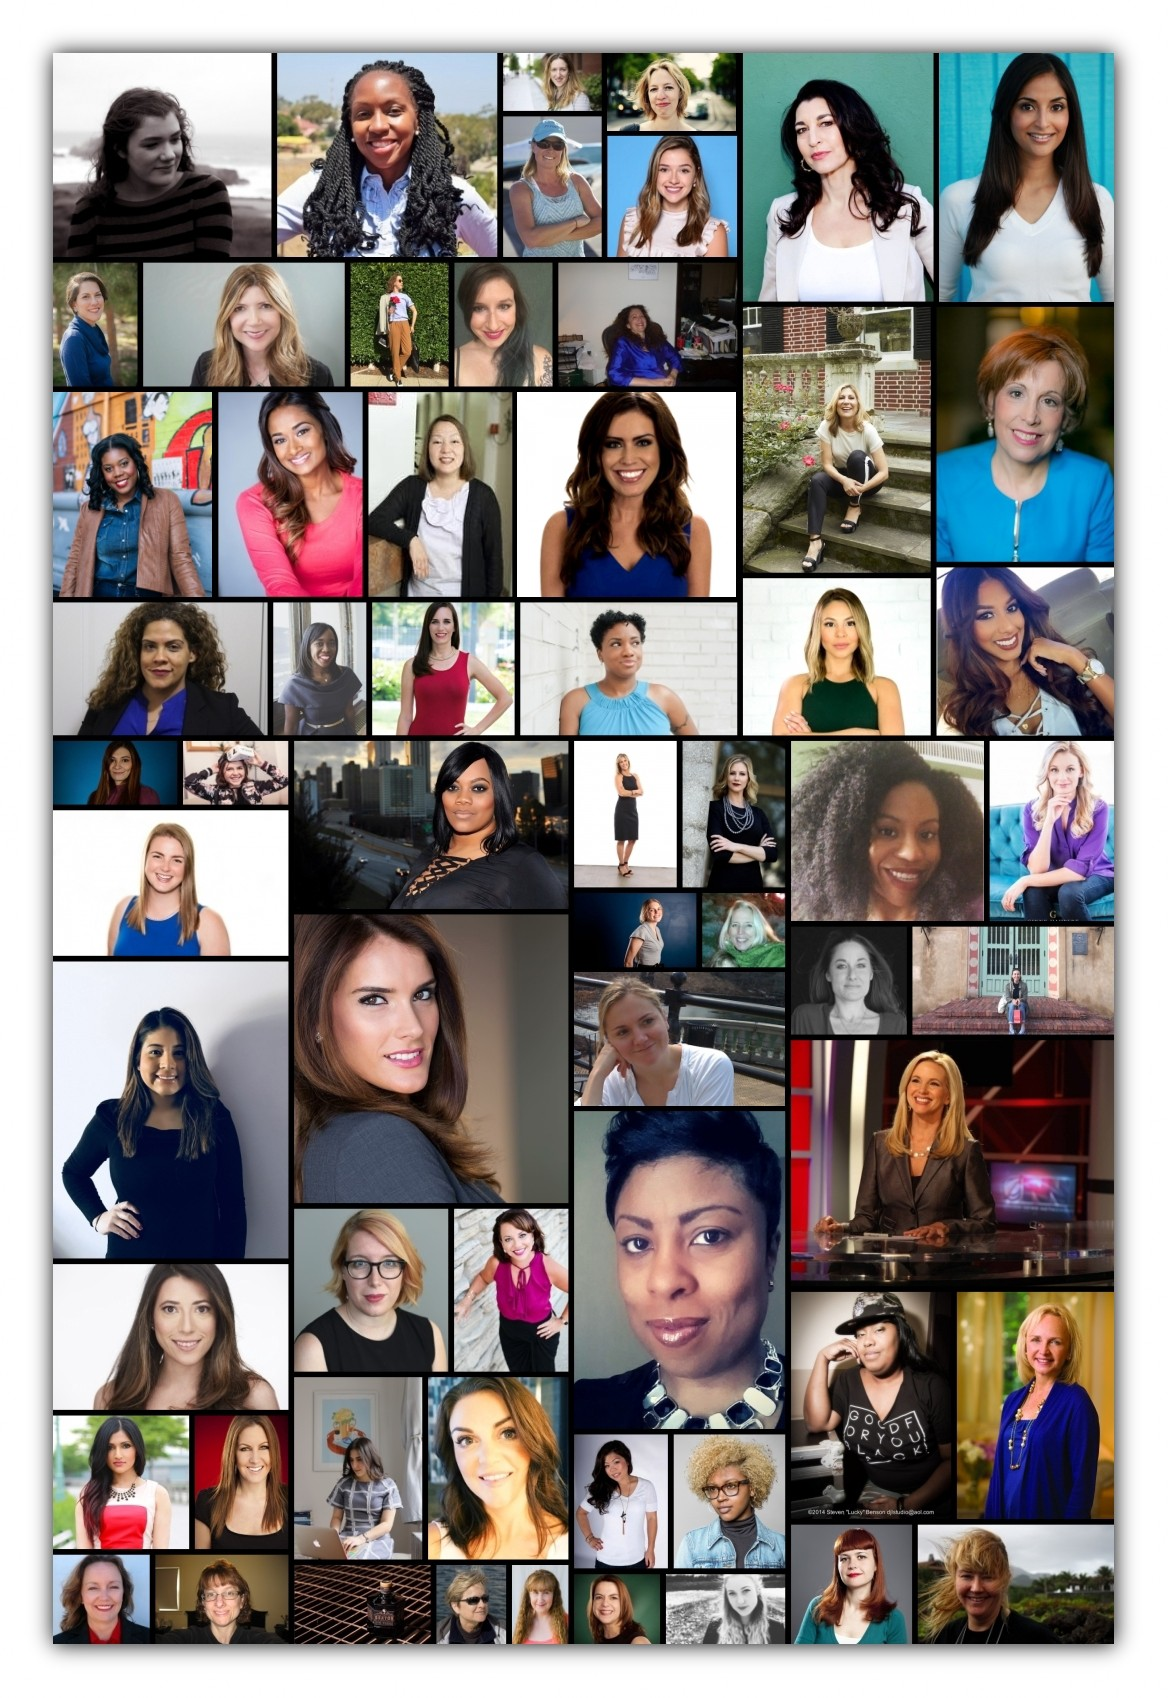 1ba06698 59 Women In Journalism Share Their Top 5 Tips To Excel As A Journalist